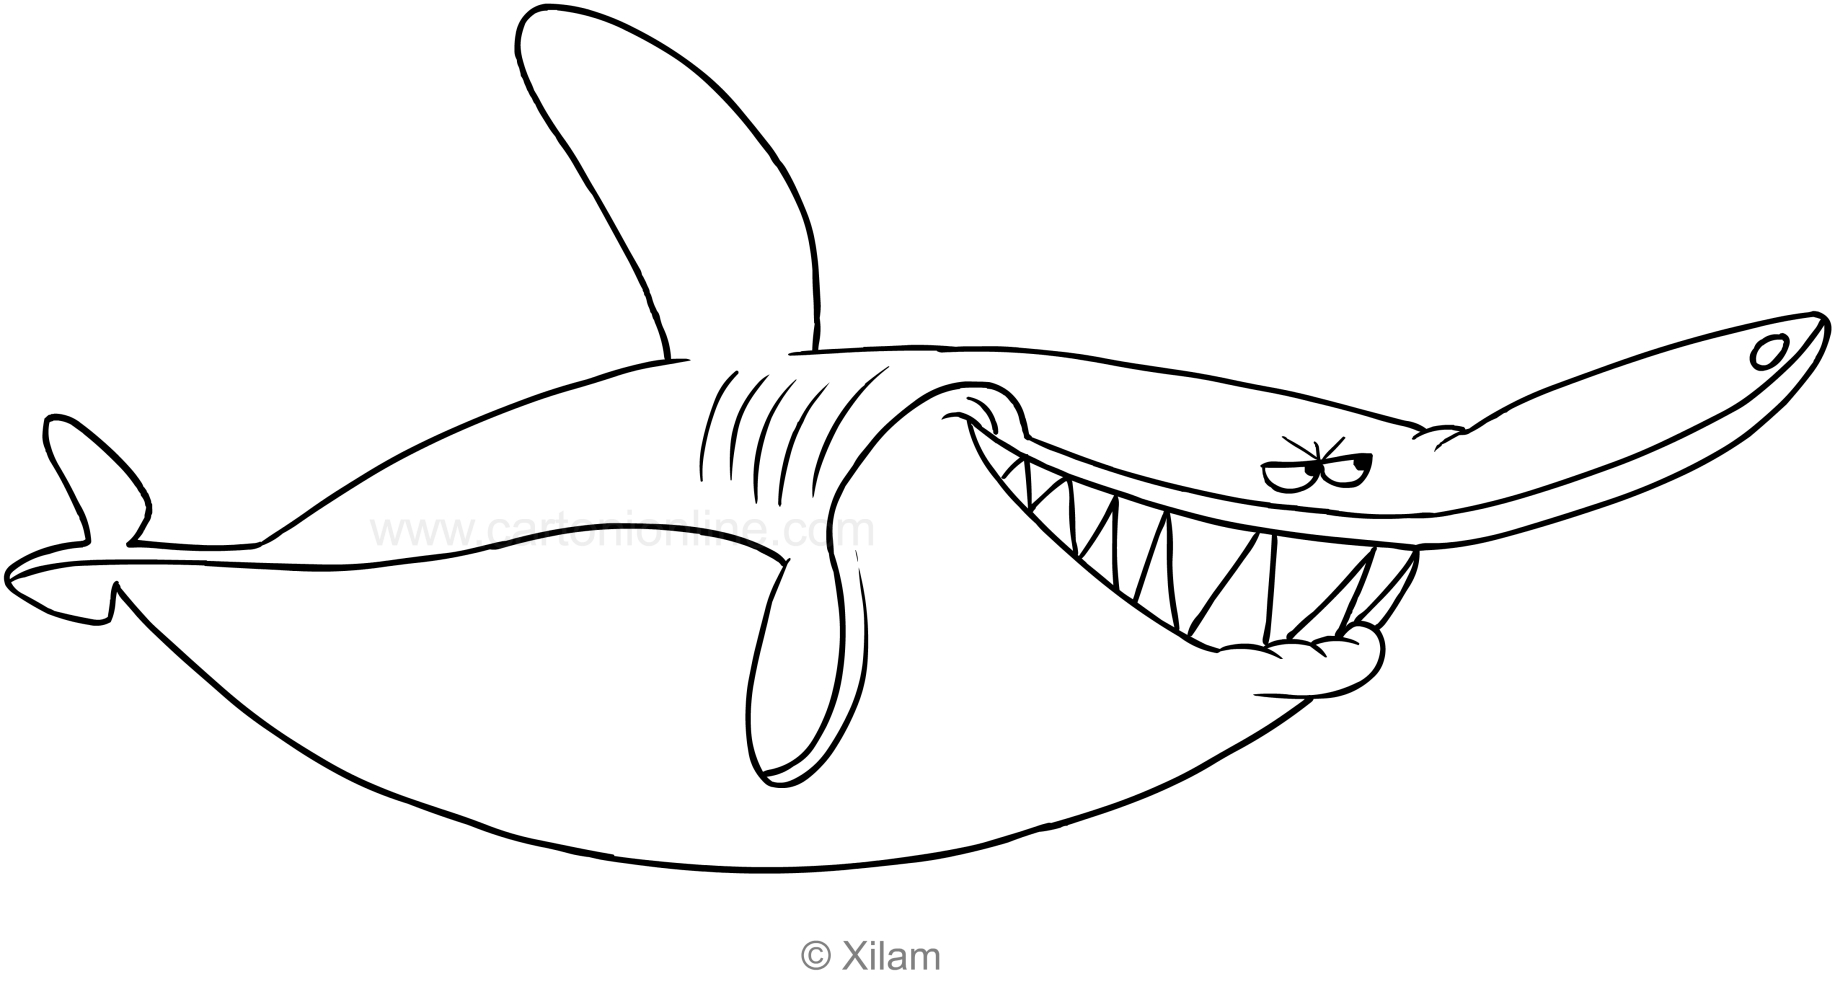 sharko the shark coloring page